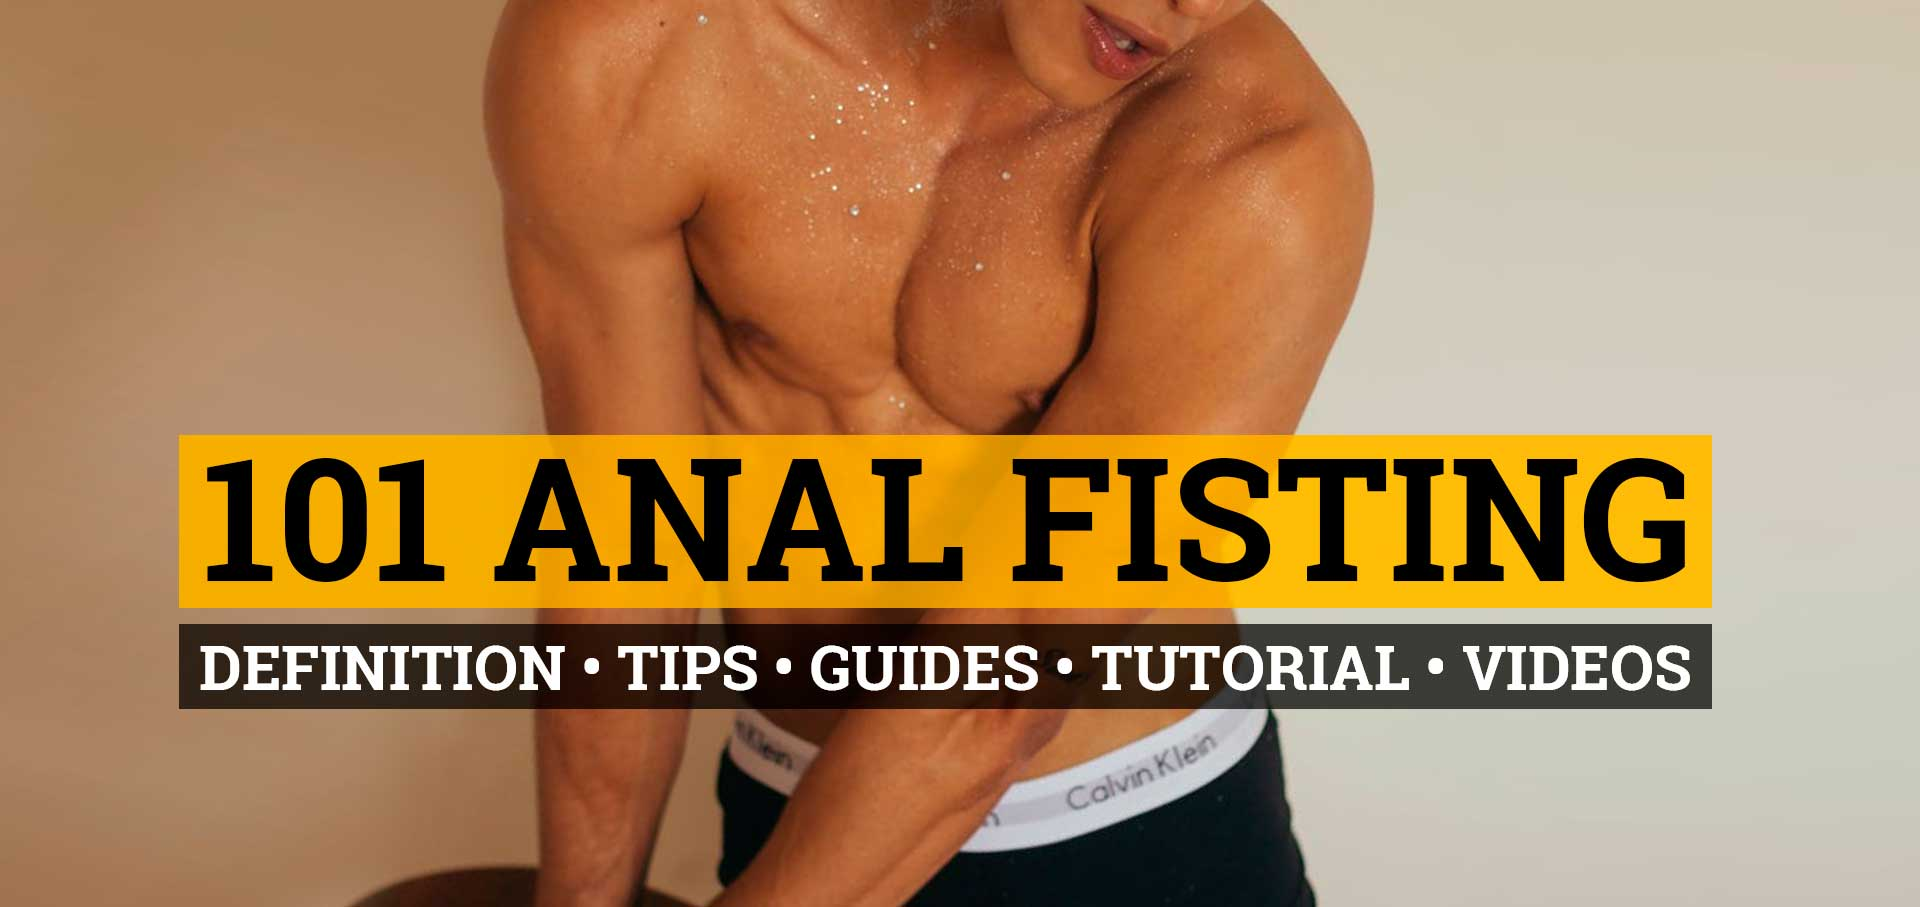 Fisting Guides - 101 Fisting – Definition, tips, guides, tutorial and Videos